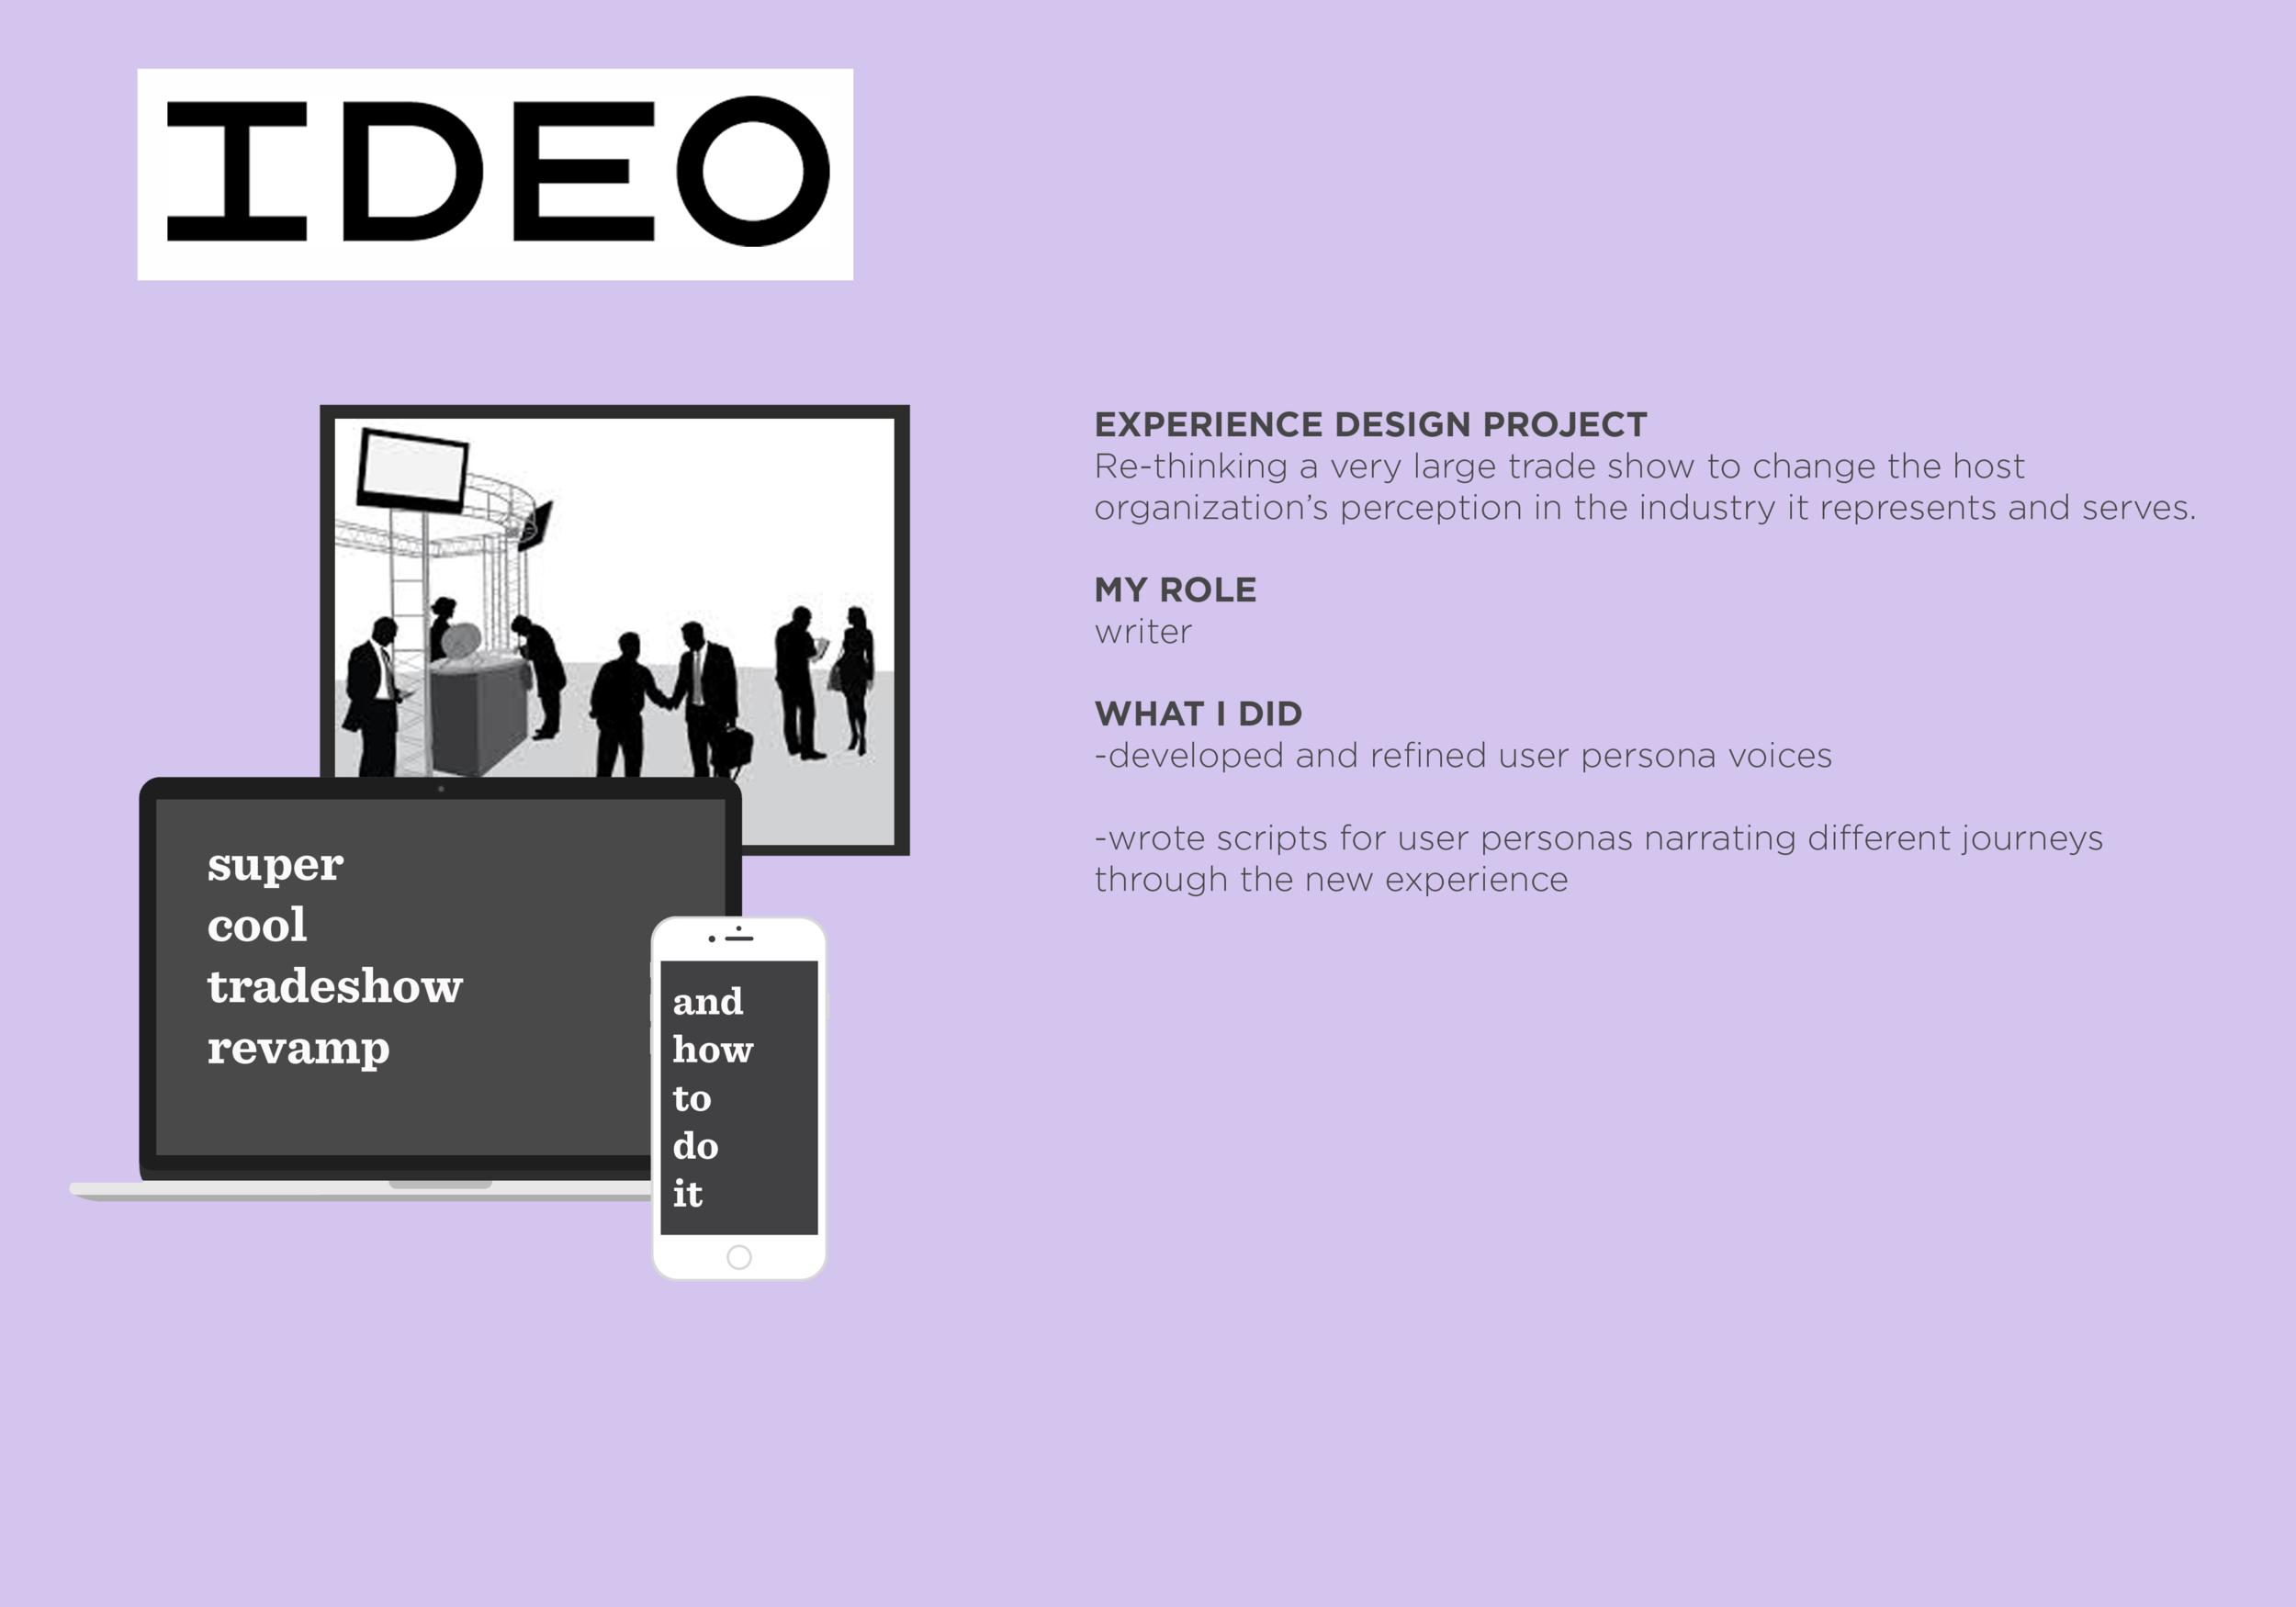 Ideo FL Mock Up Experience Design.png